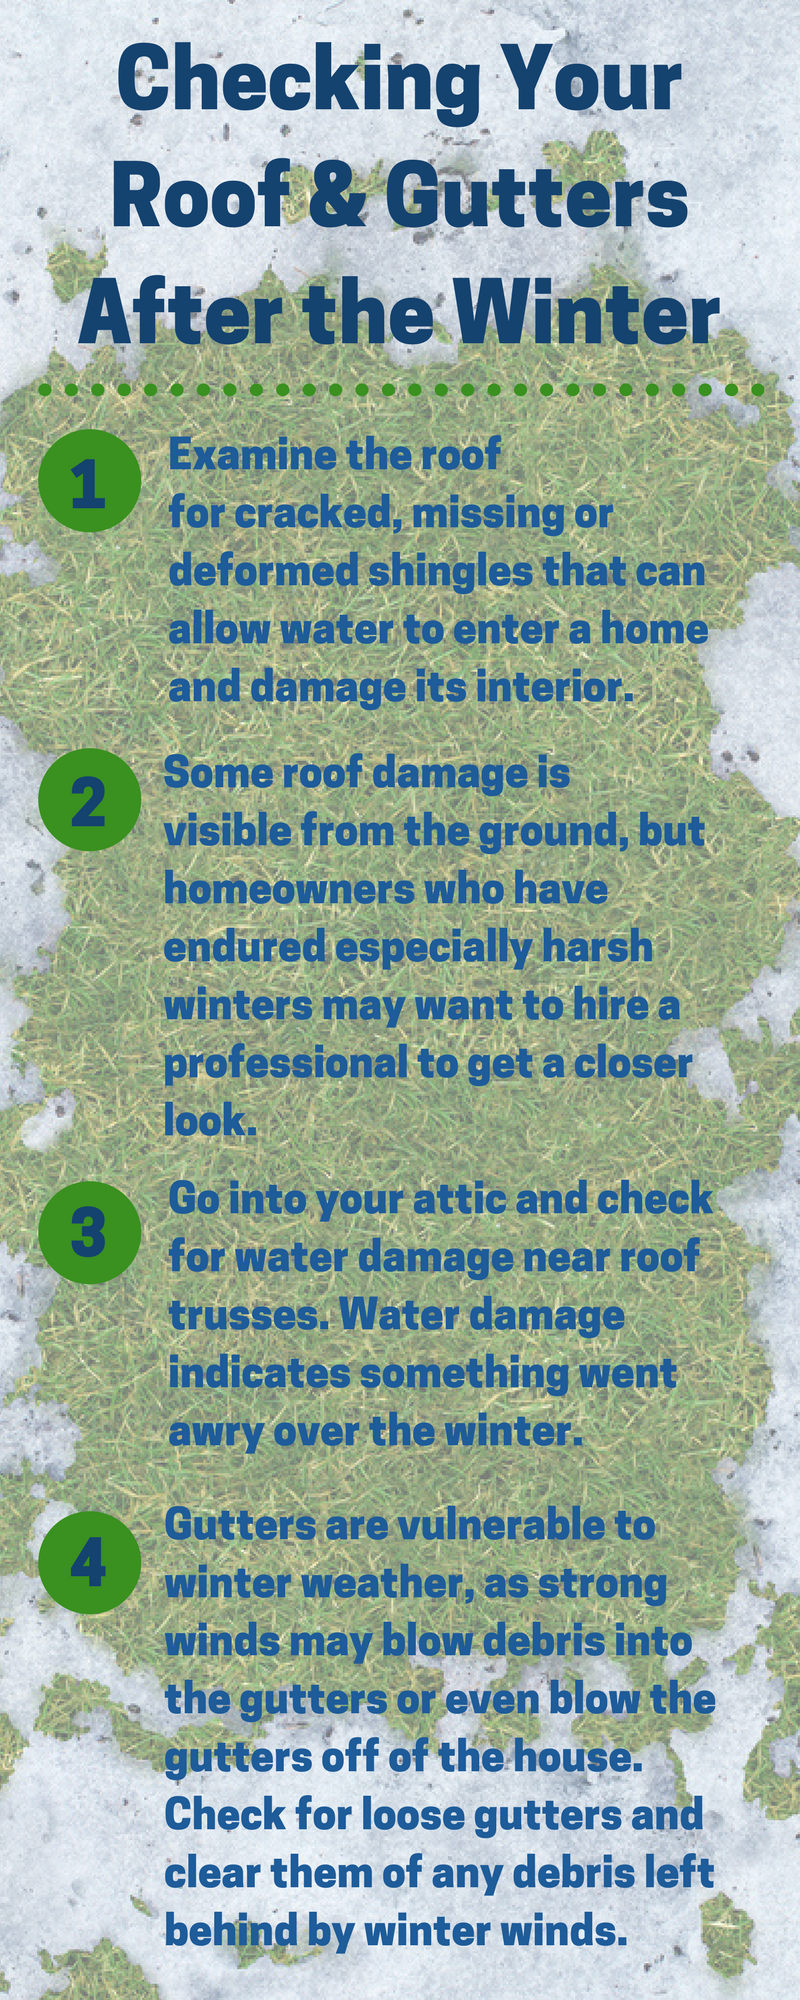 Checking Your Roof & Gutters After the Winter - Image 2